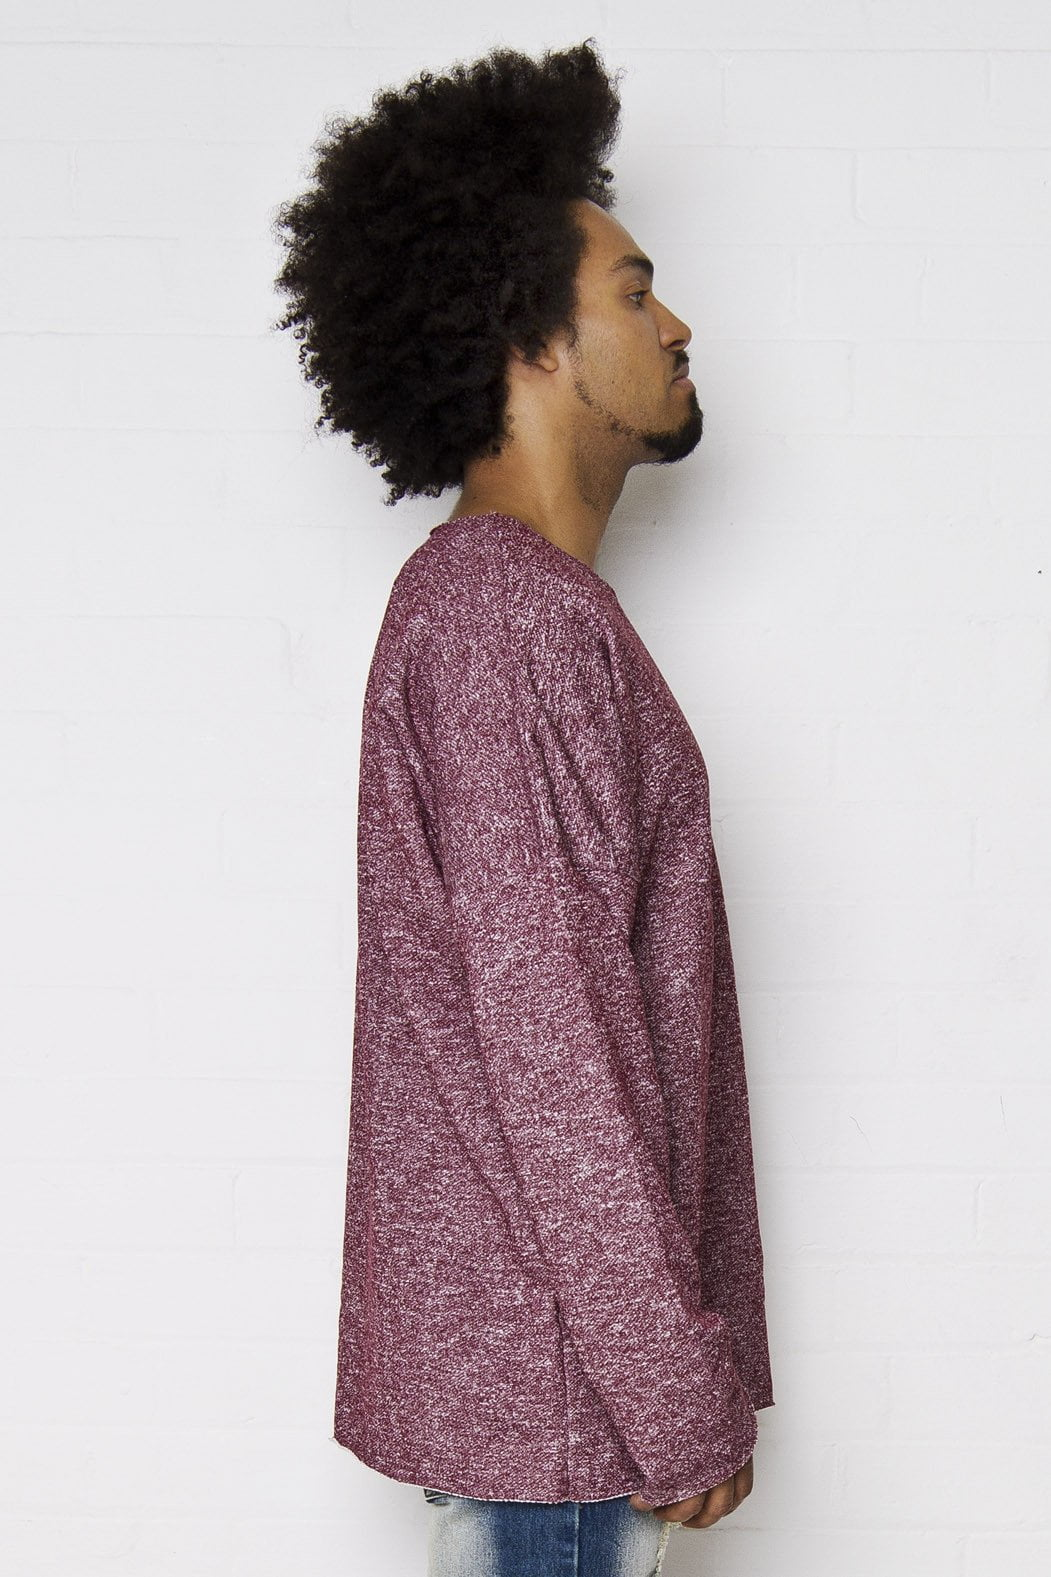 Bakerfield - Raw edge oversized sweat top in burgundy - Liquor N Poker  Liquor N Poker